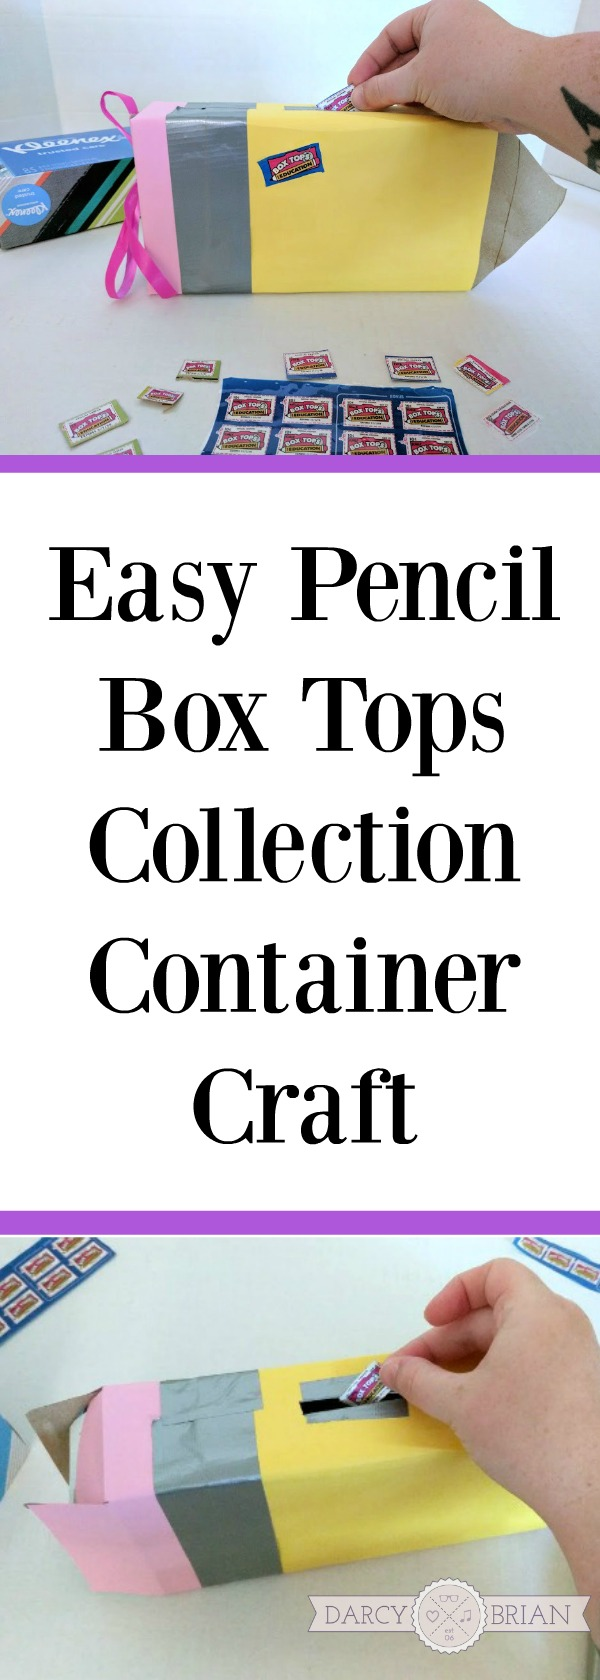 Love this cute tissue box craft! Make this fun and easy pencil shaped Box Tops collection container for home or school. It's an easy DIY to help hold onto Box Tops for Education to turn into the school. Great way to support your school while stocking up on back to school supplies. AD #BoxTopsHero #CollectiveBias